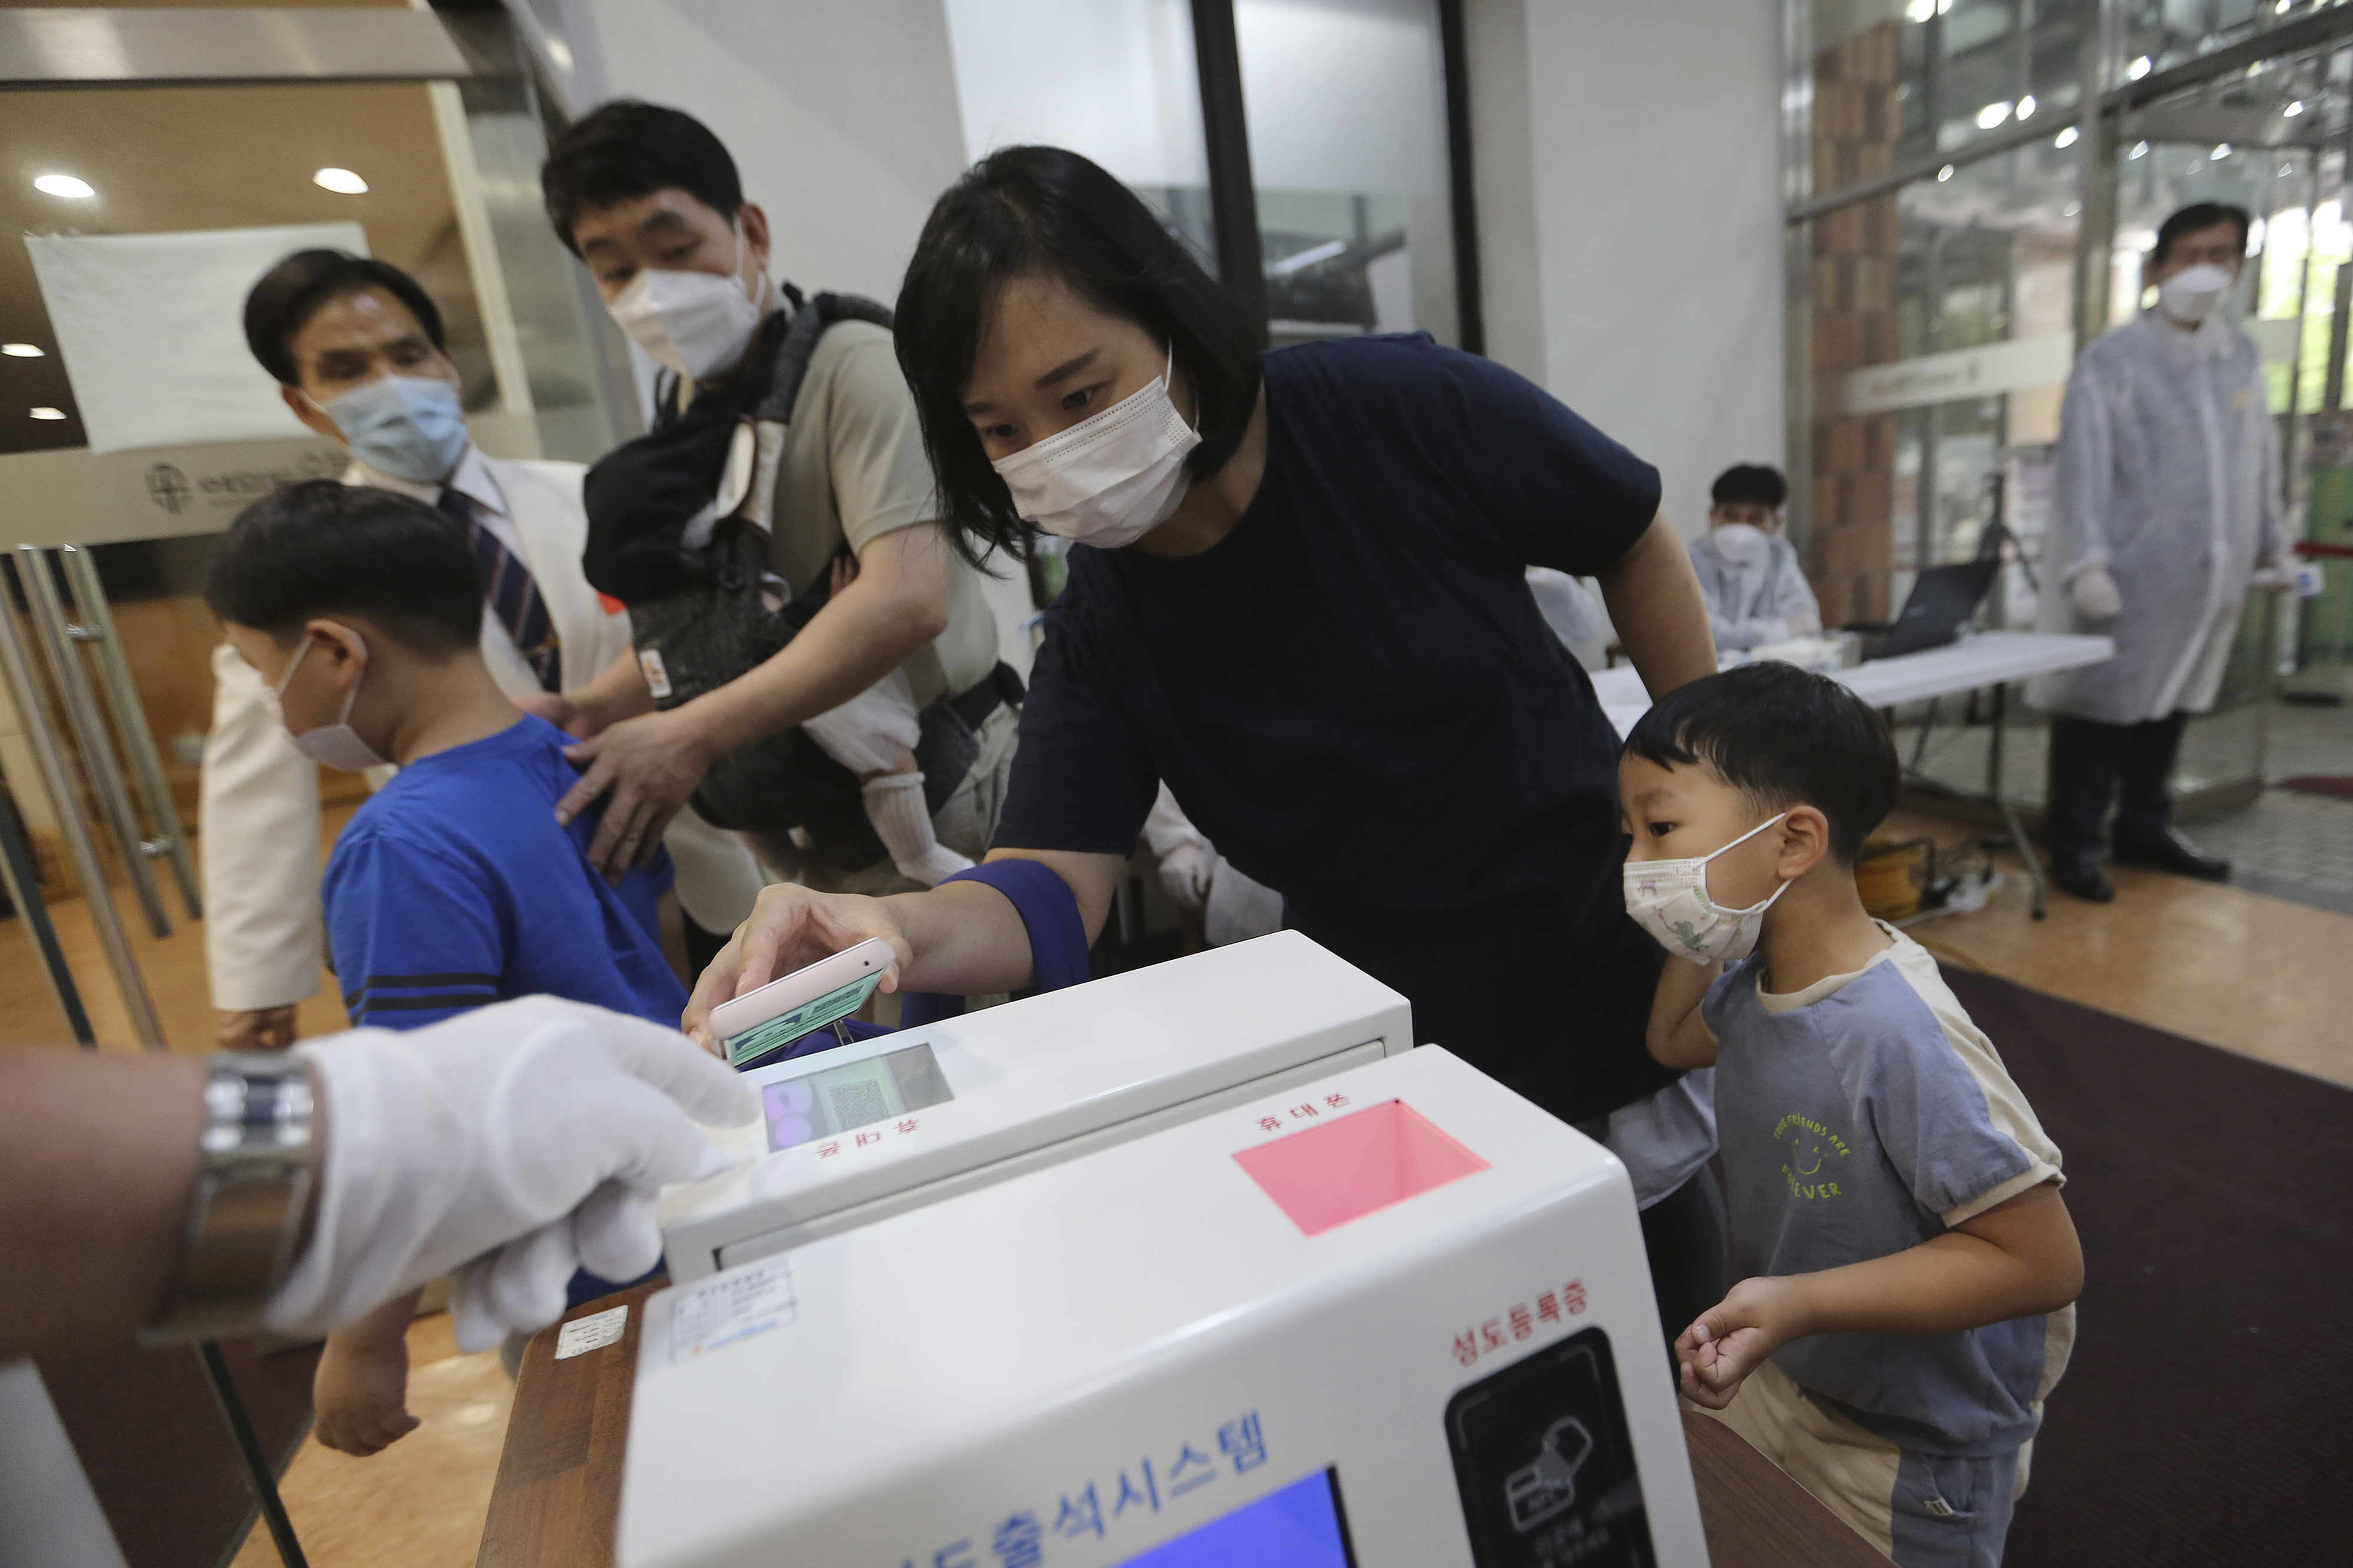 A Christian woman wearing a face mask to help protect against the spread of the new coronavirus scans a QR code on her smartphone before attending a service at the Yoido Full Gospel Church in Seoul, South Korea, Sunday, July 5, 2020. (AP Photo/Ahn Young-joon)